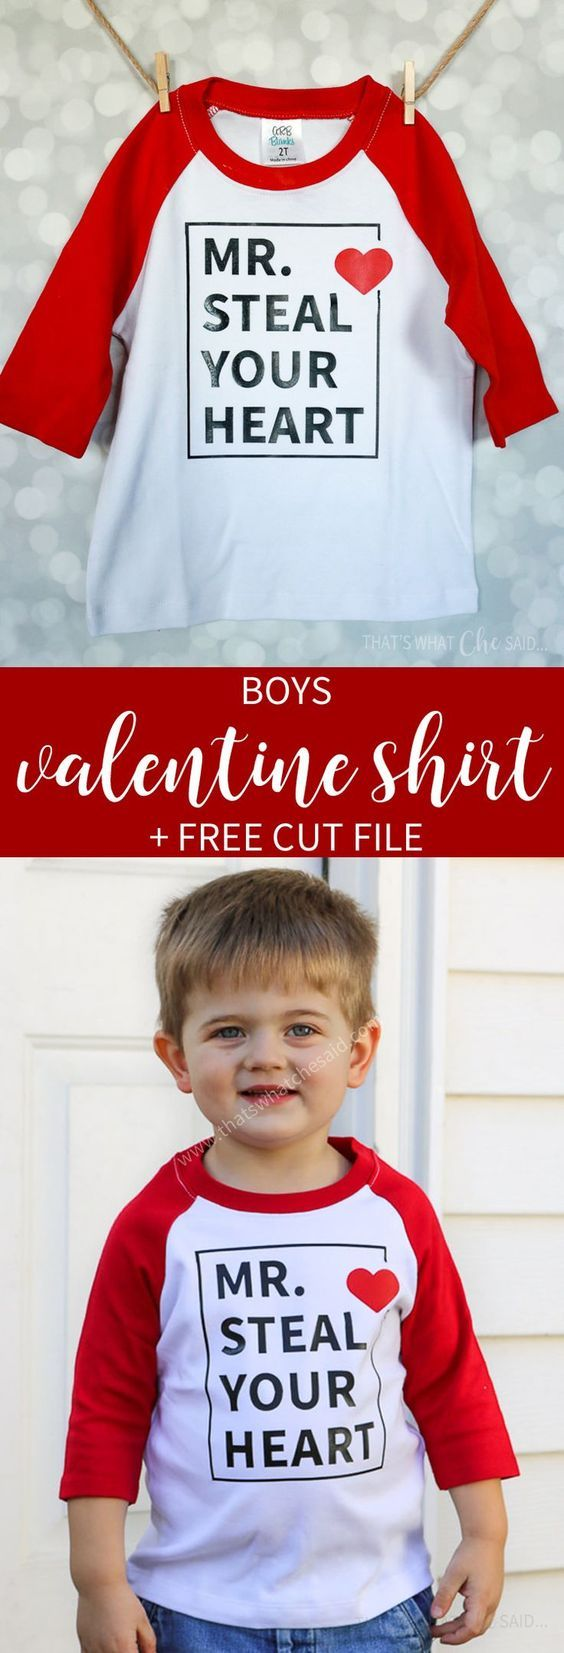 Boys Valentine Shirt Design + Free Cut File. A fun and cute valentines shirt idea for the boys! As a boymom it's always a struggle to find cute boy stuff so I made my own and am sharing with you!